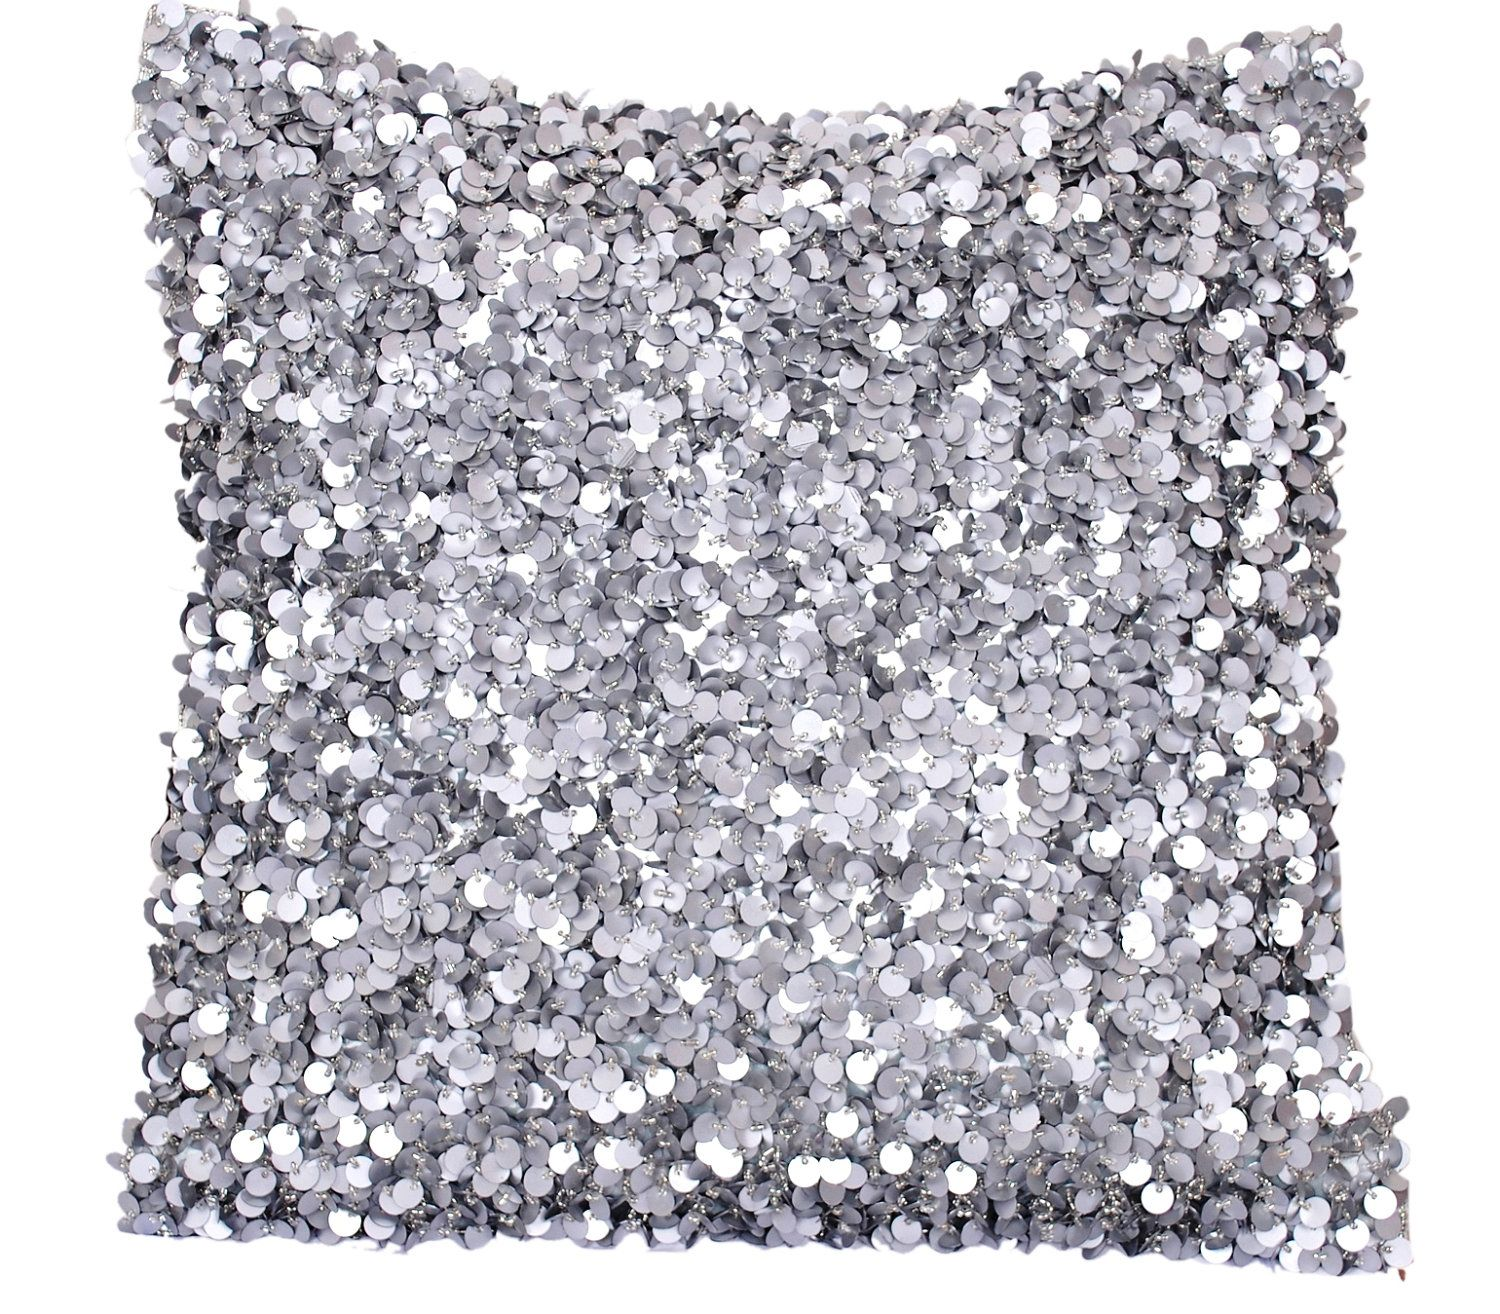 Silver Pillow Cover, One 16 x 16 Decorative Throw Pillow, Silver Grey, Sequins, Beads, Glitter ...